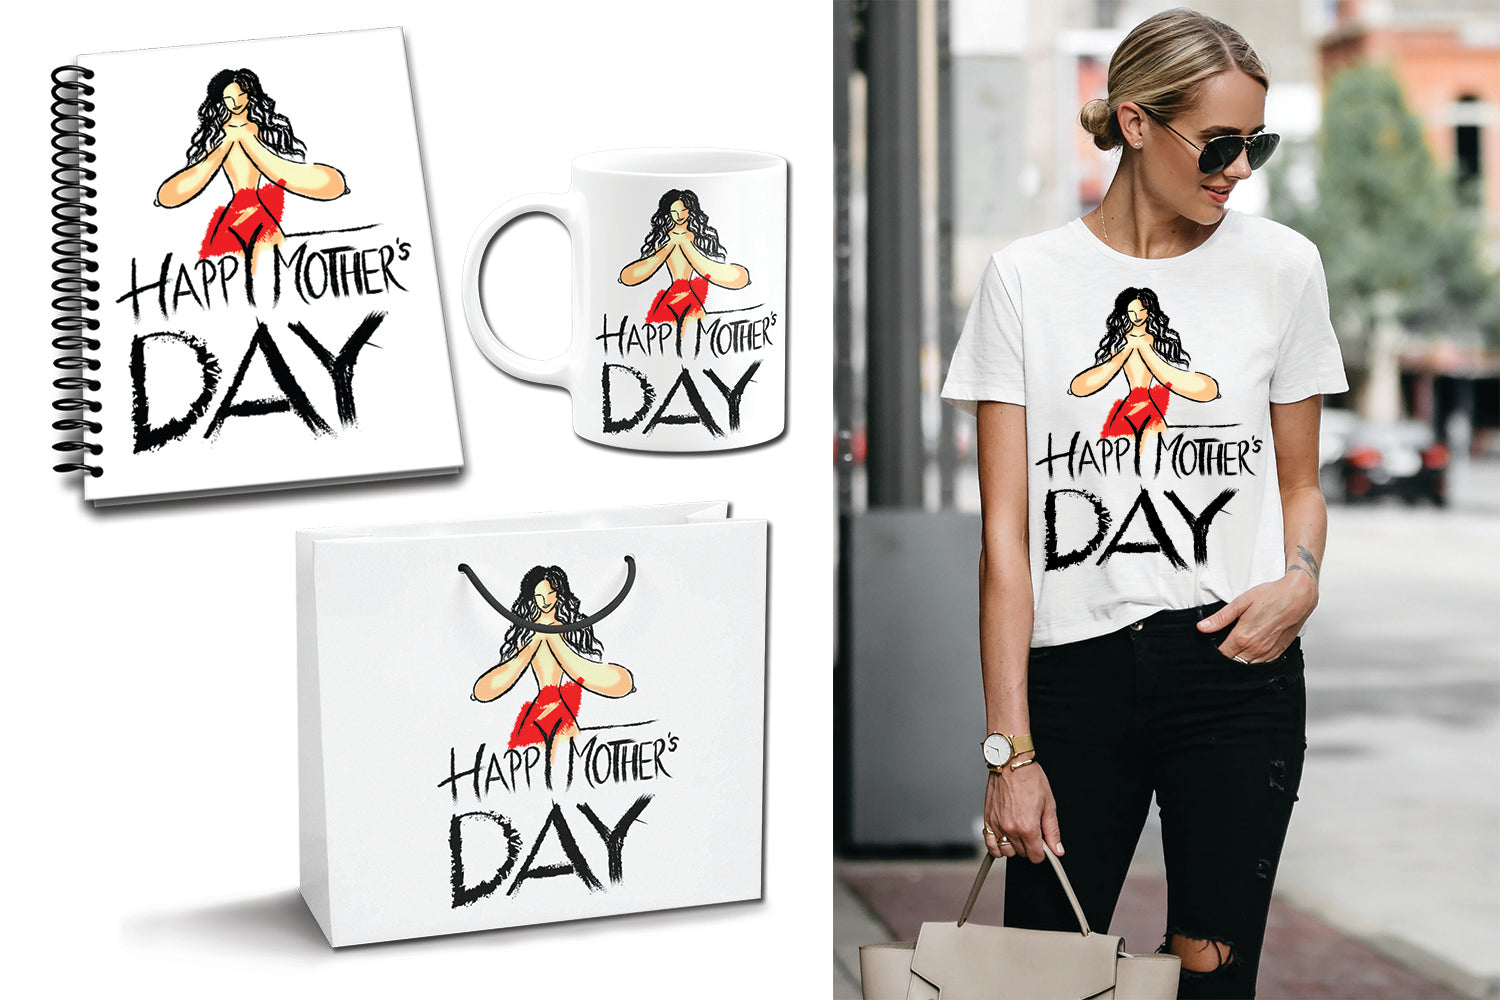 Happy Mother's Day Set, Funny Mother's Day Gift, T-shirt, Cup, Bag, Notebook, Best Gift For Mother In A Special Day